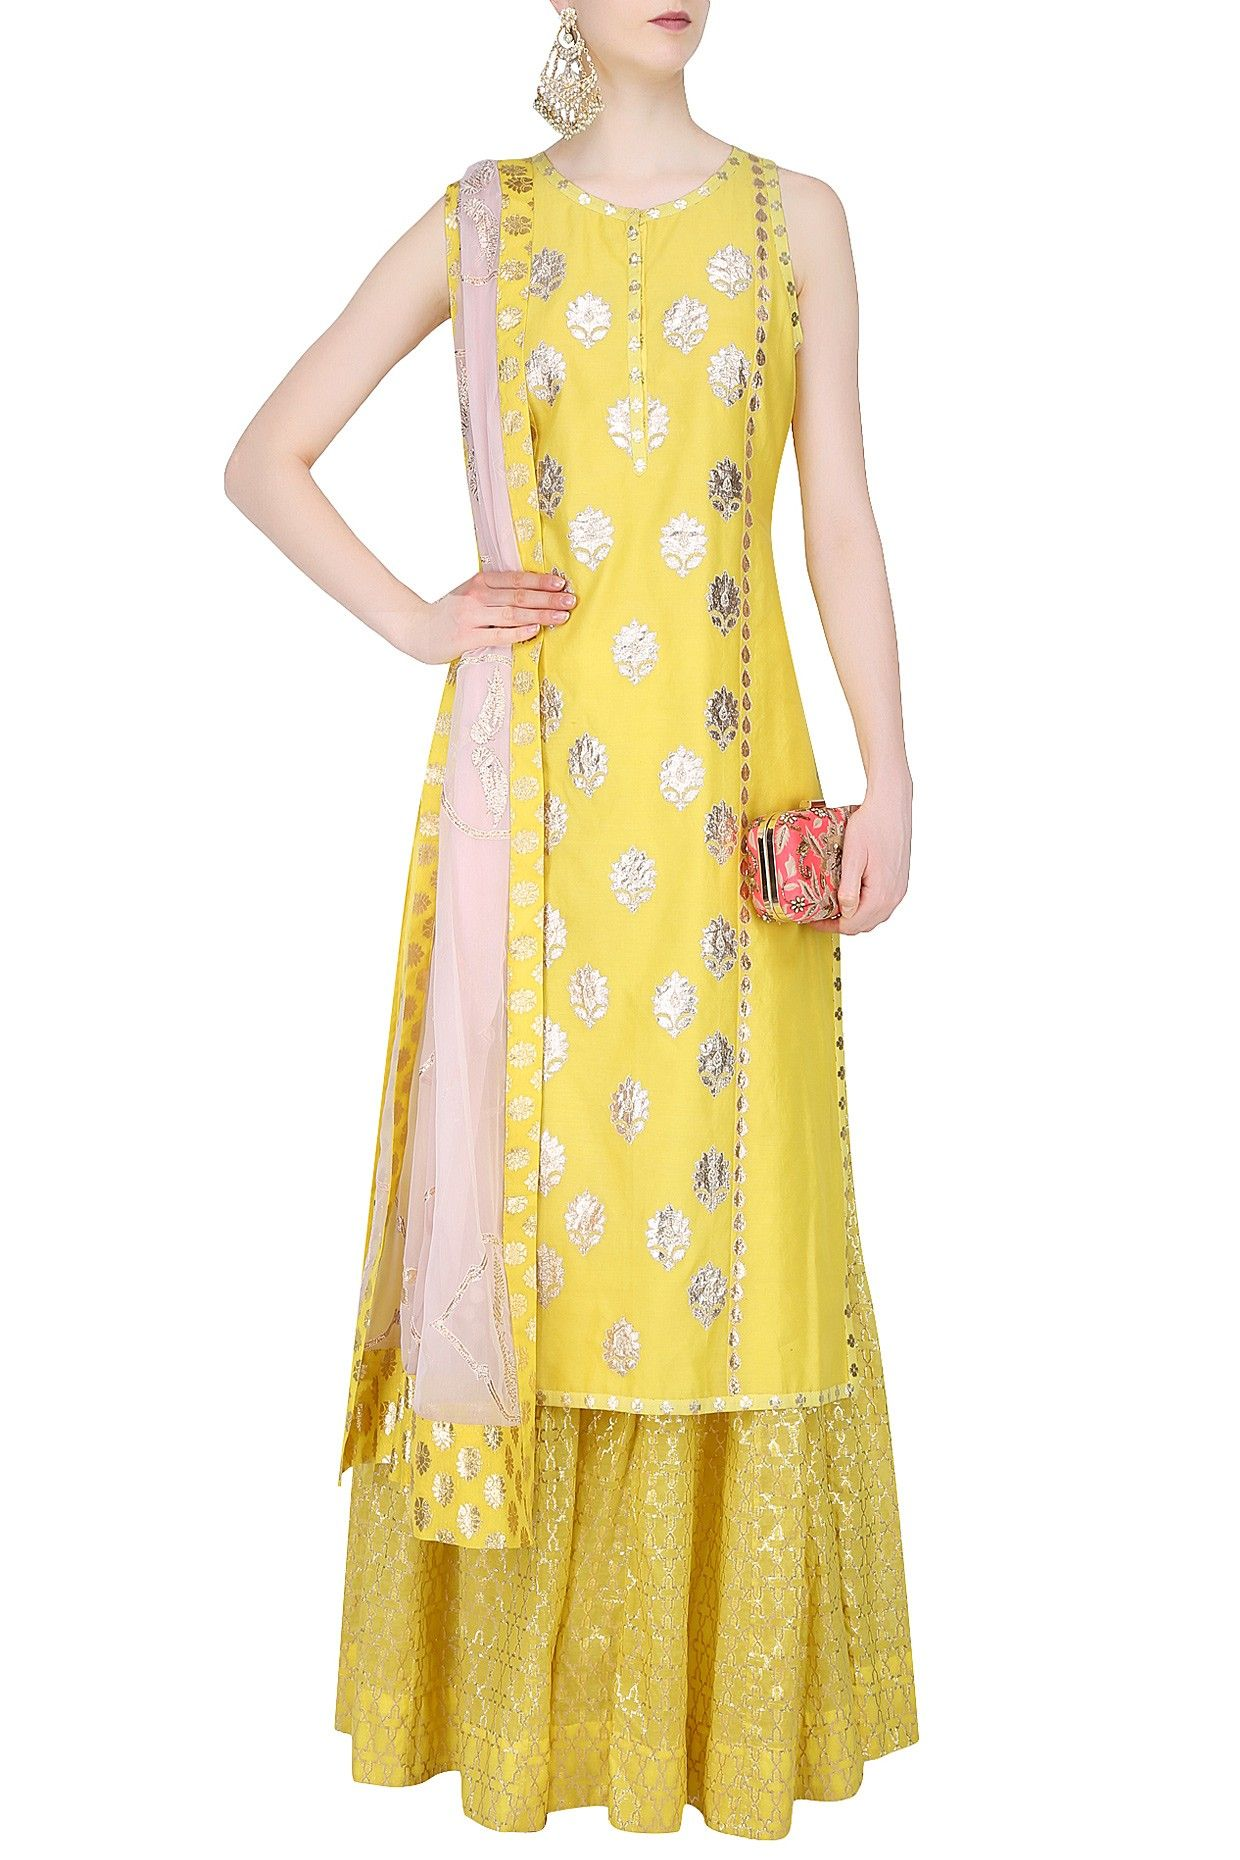 be0fc6bdfb8 Yellow and powder pink embroiderd sharara set available only at Pernia's  Pop Up Shop.